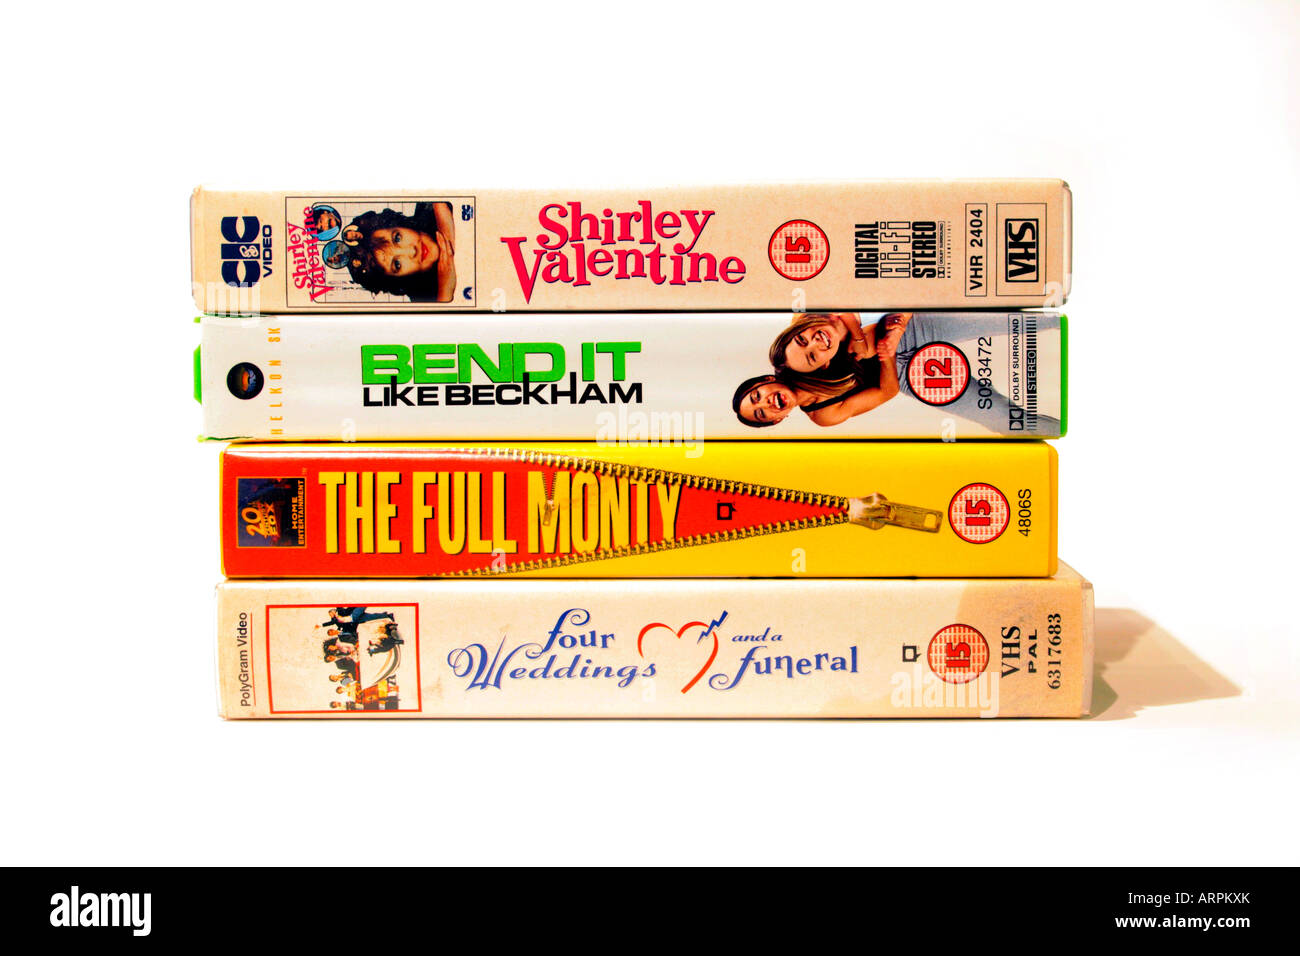 A collection of VHS videos of popular British films of the eighties and nineties. Shirley Valentine (1989) Directed - Stock Image